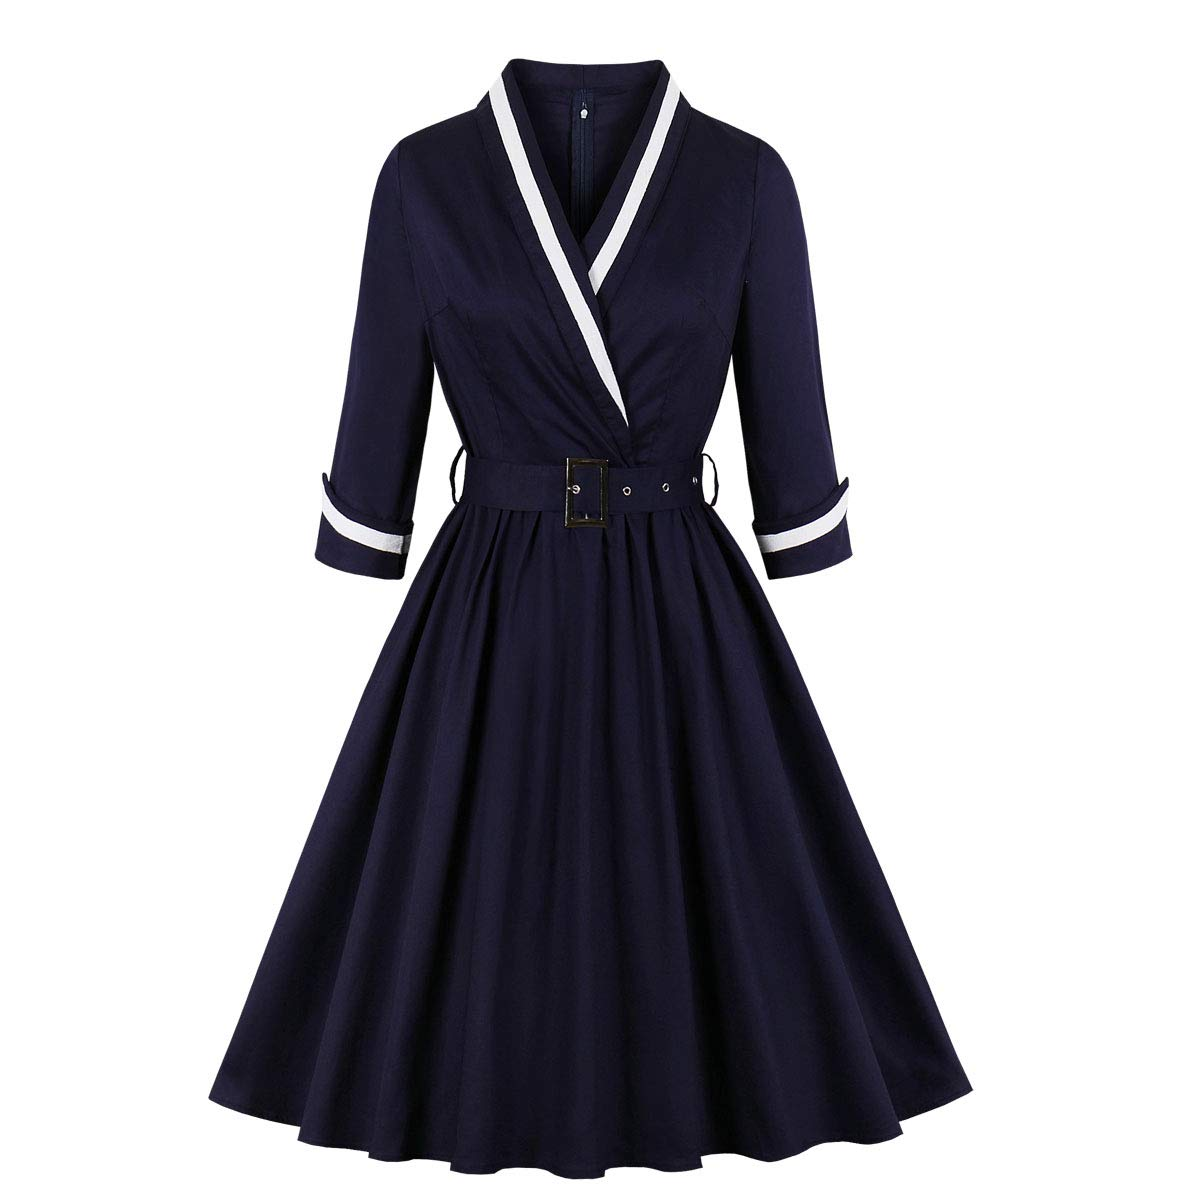 Vintage 50s Dresses: Best 1950s Dress Styles Wellwits Womens 3/4 Sleeves Wrap Sailor Stripe Cotton Vintage Career Dress $24.98 AT vintagedancer.com